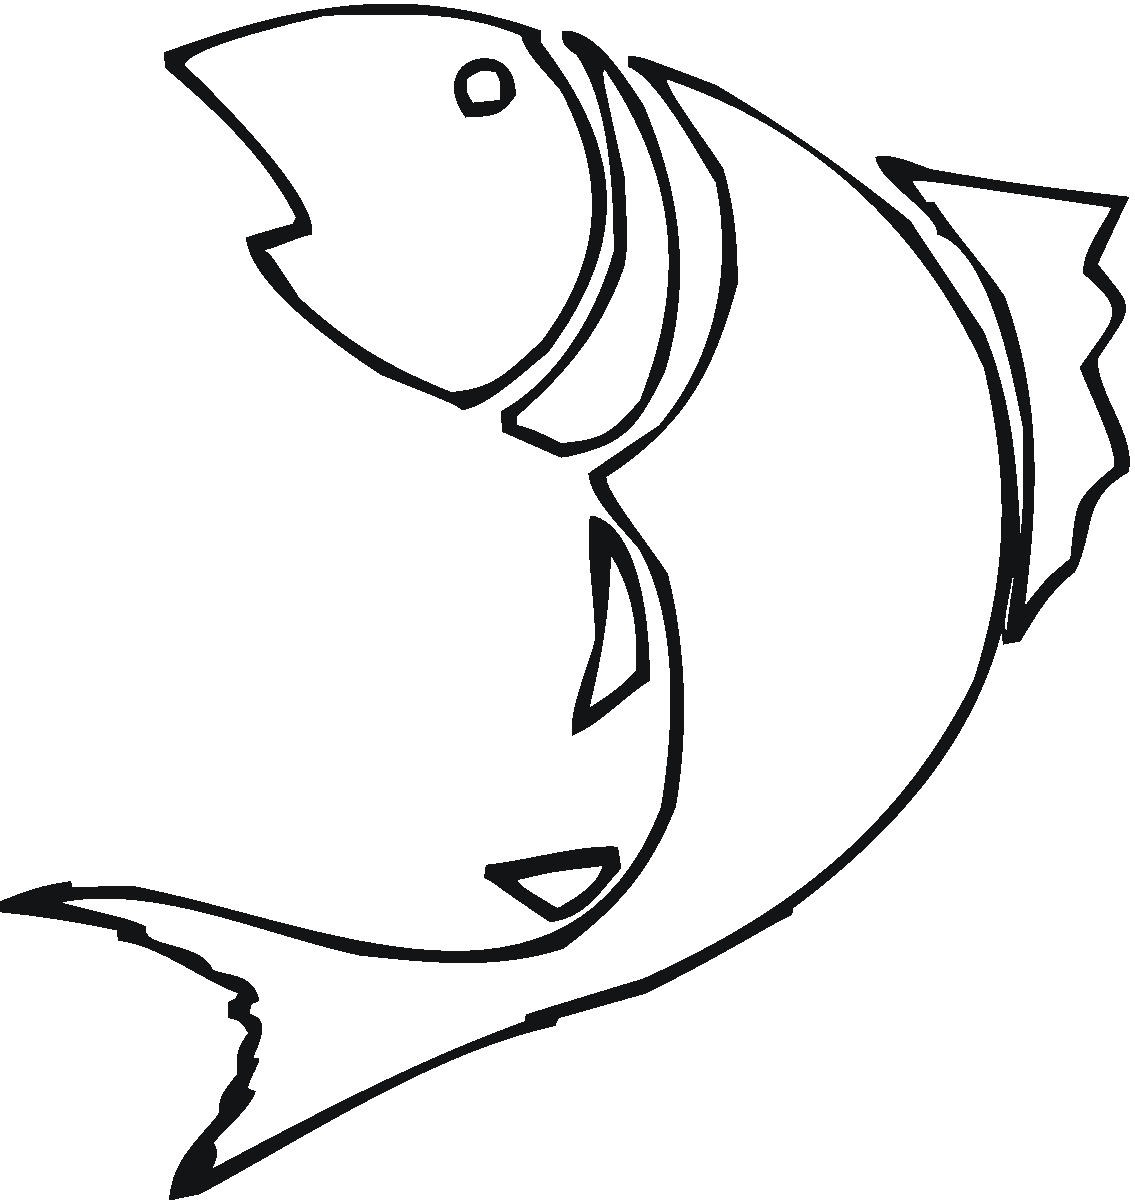 Line Drawing Of A Fish - ClipArt Best